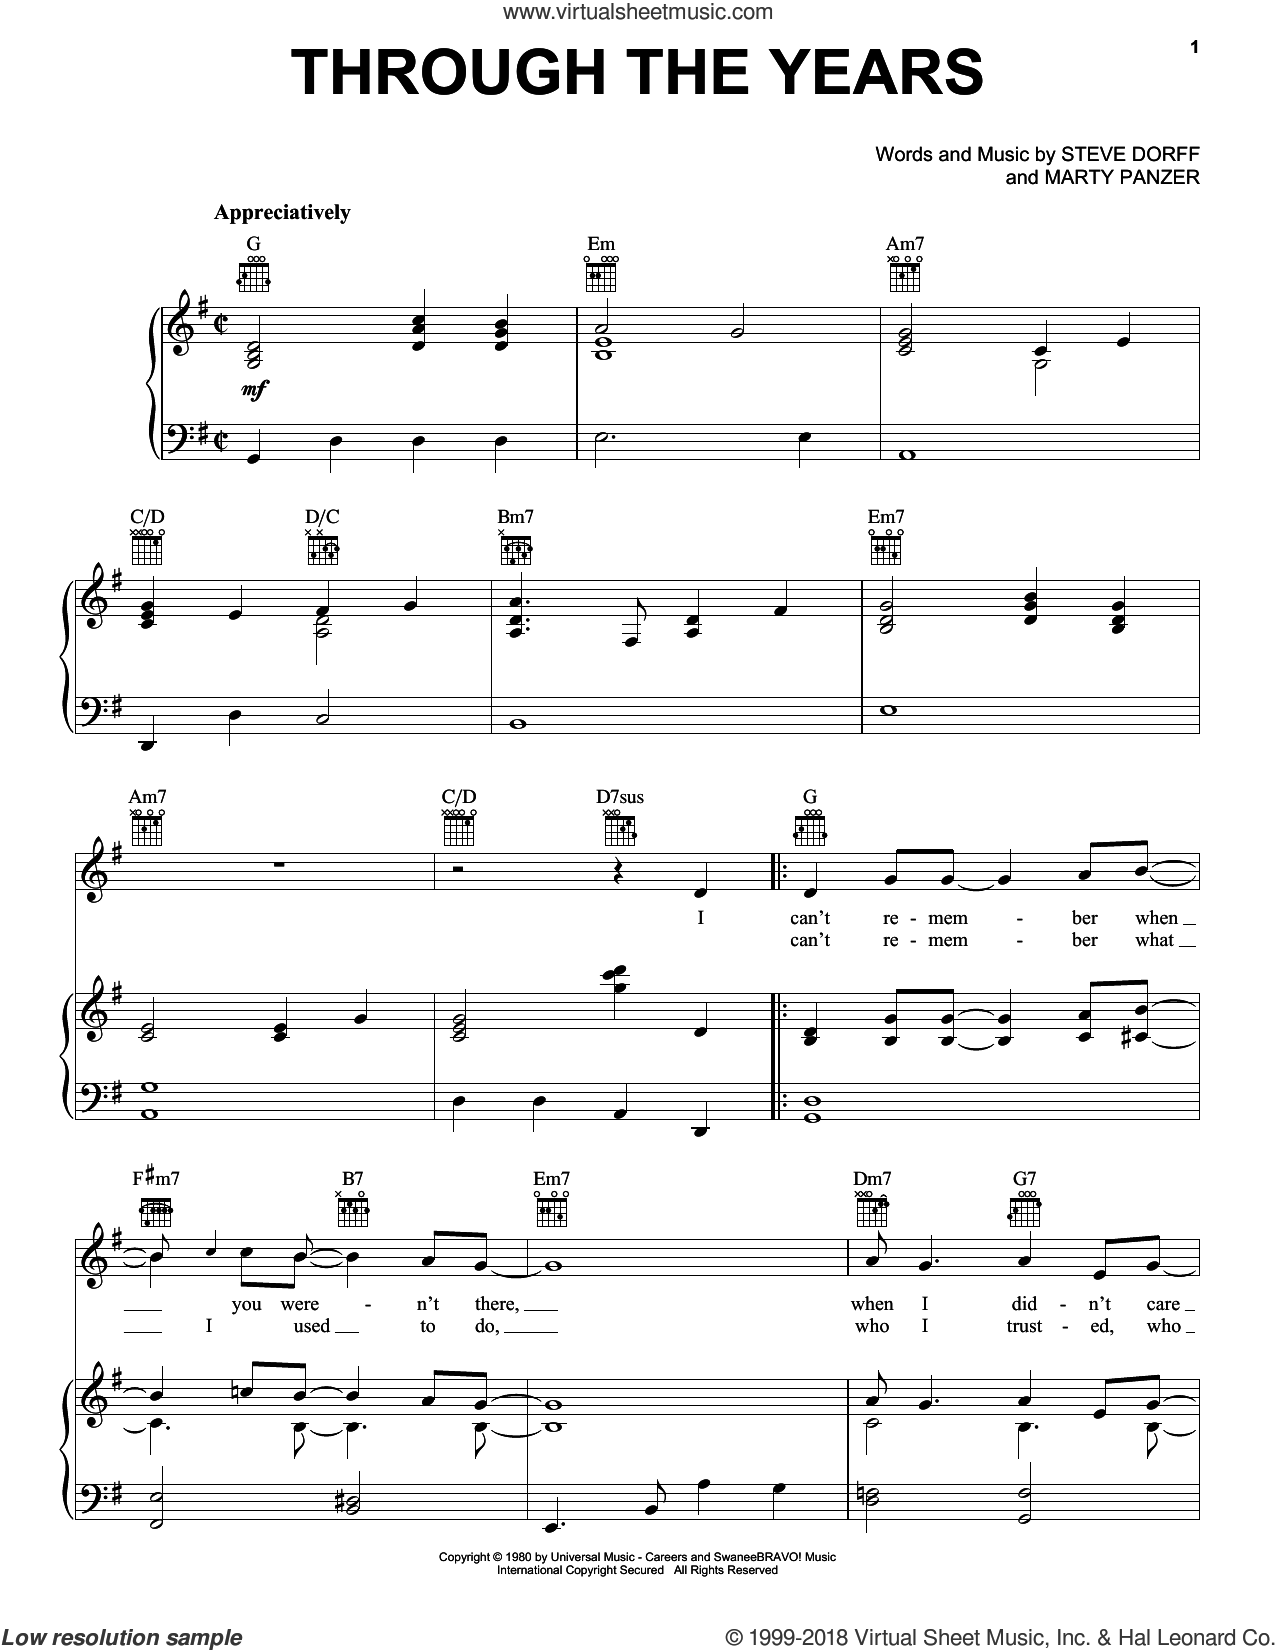 Love Songs 2 (complete set of parts) sheet music for voice, piano or guitar by Celine Dion, Various Artists, Al Braggs, Barry Manilow, Chris Arnold, David Martin, Deadric Malone, Geoff Morrow, James Horner, Joshua Kadison, Kenny Rogers, Marty Panzer, Steve Dorff and Will Jennings, wedding score, intermediate skill level